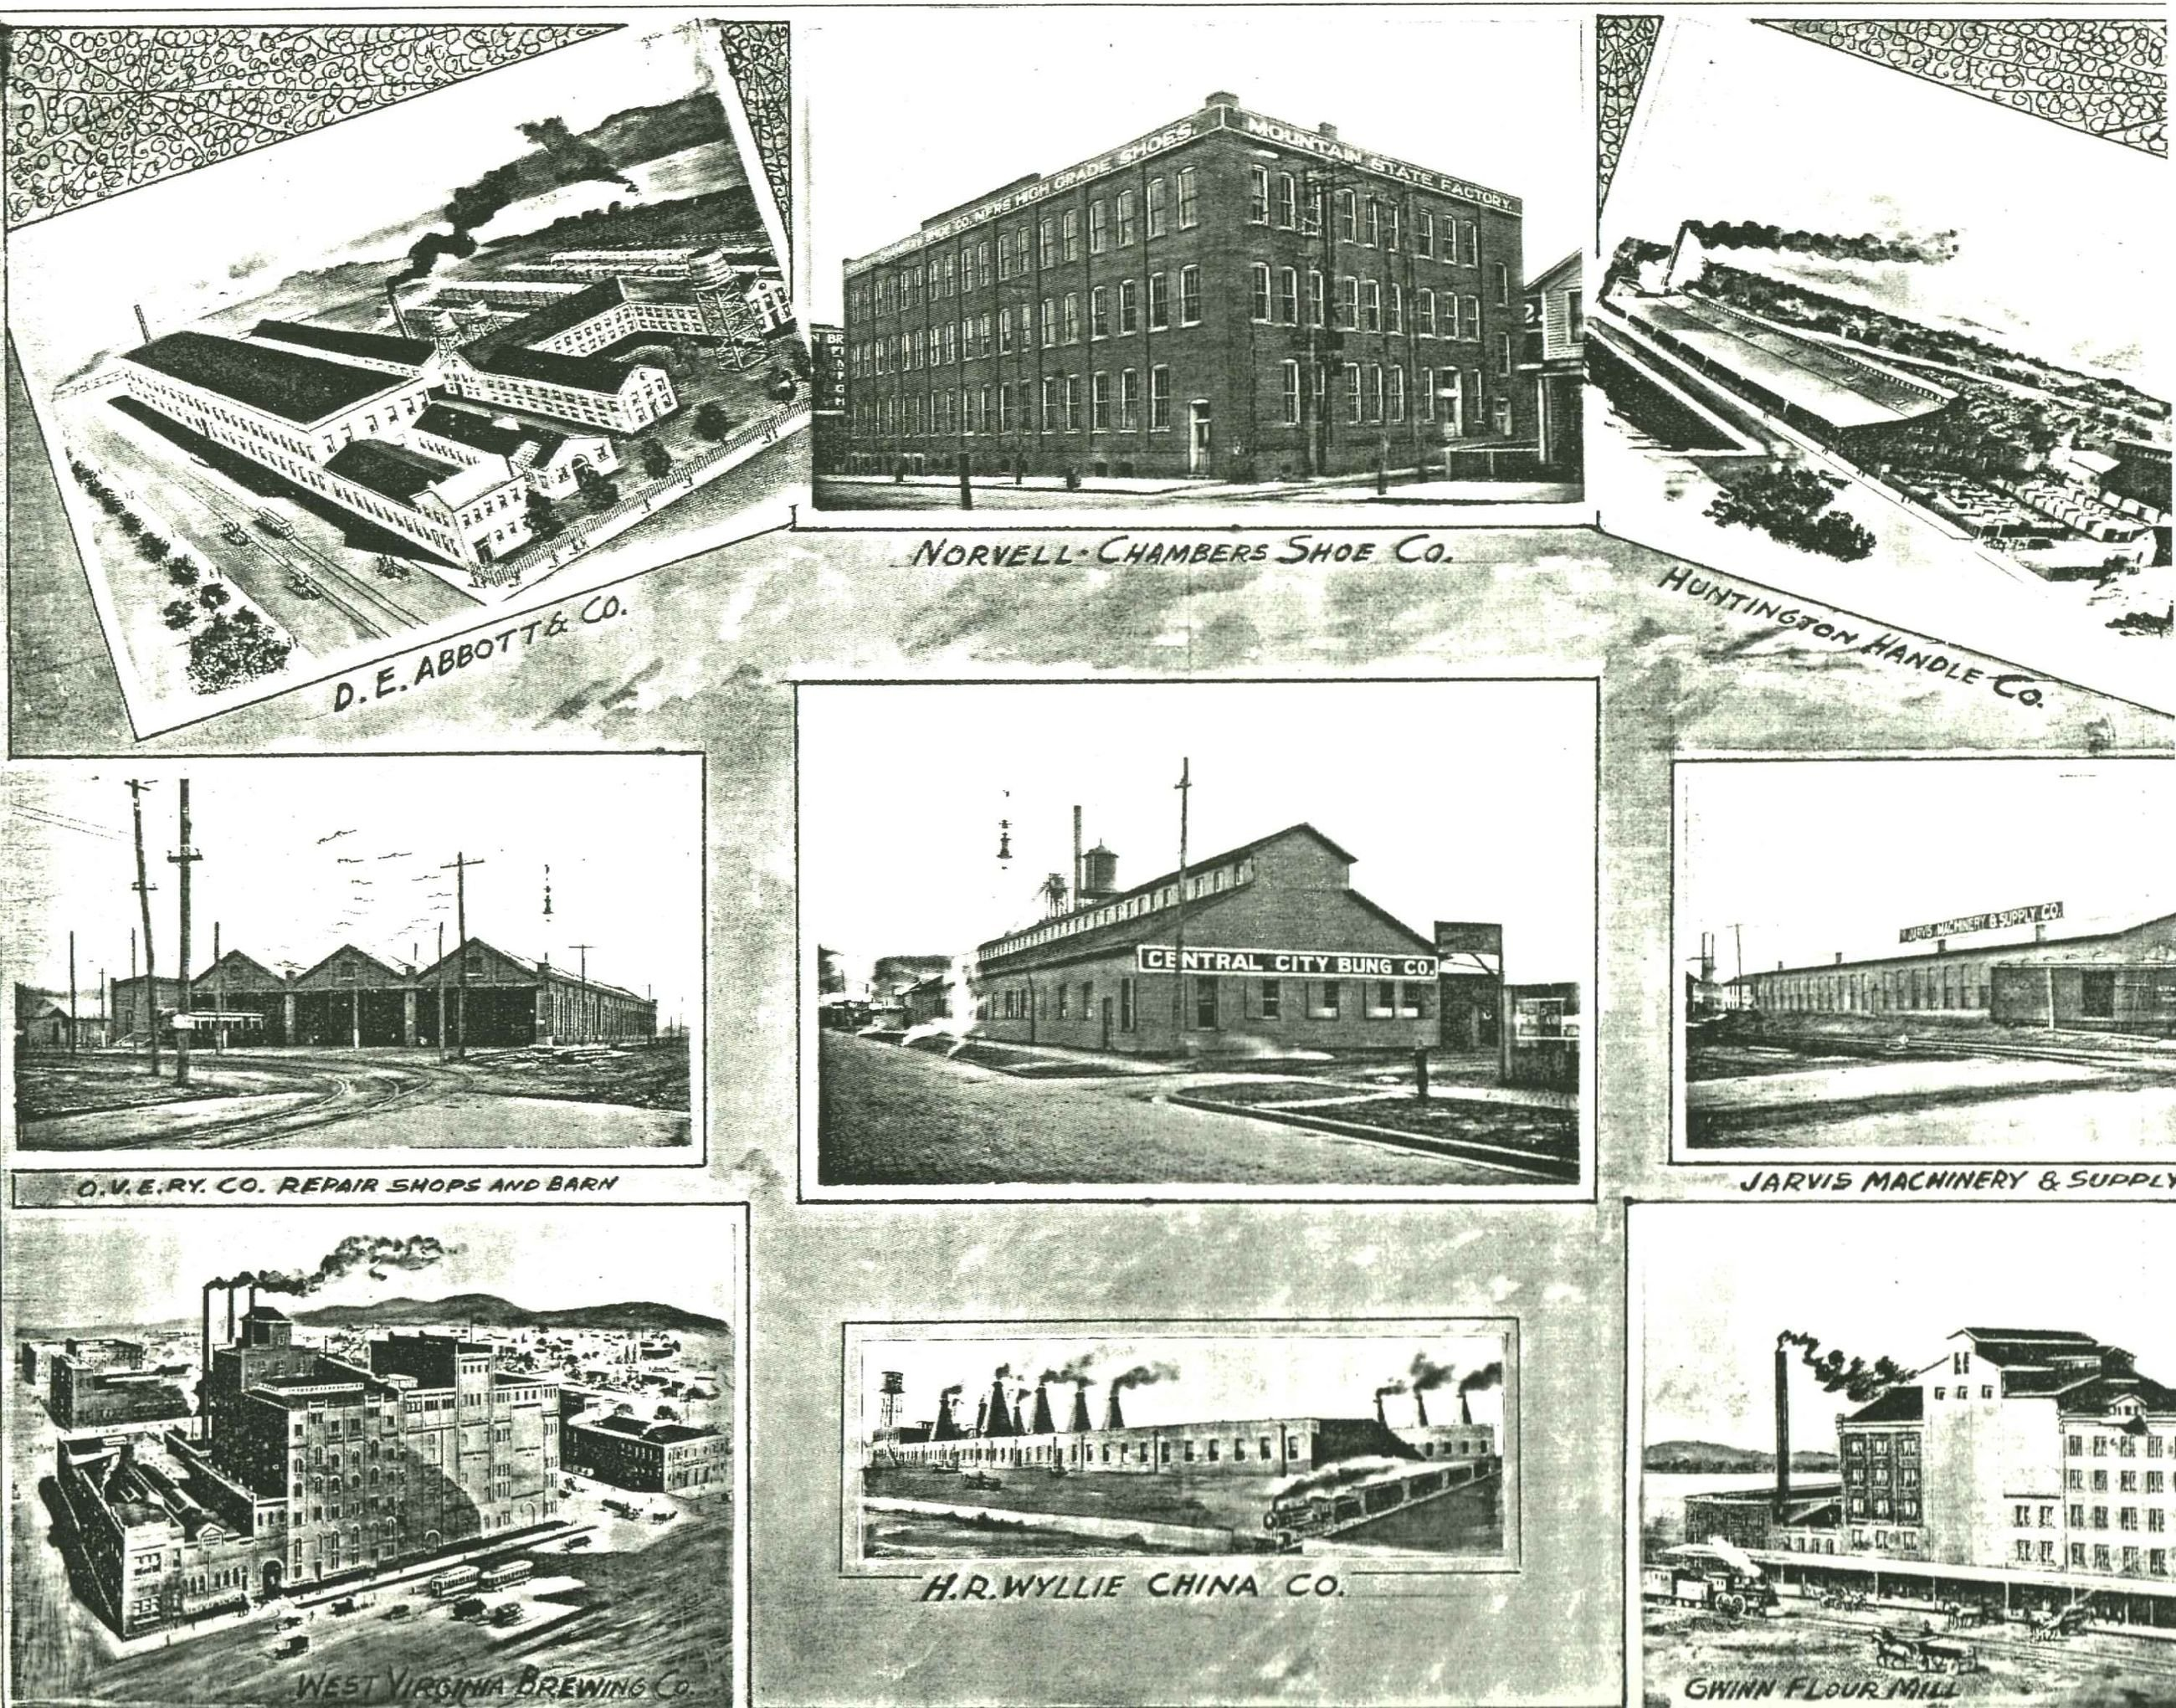 Additional factories from Central City and the surrounding area. Image courtesy of the West Huntington Public Library.